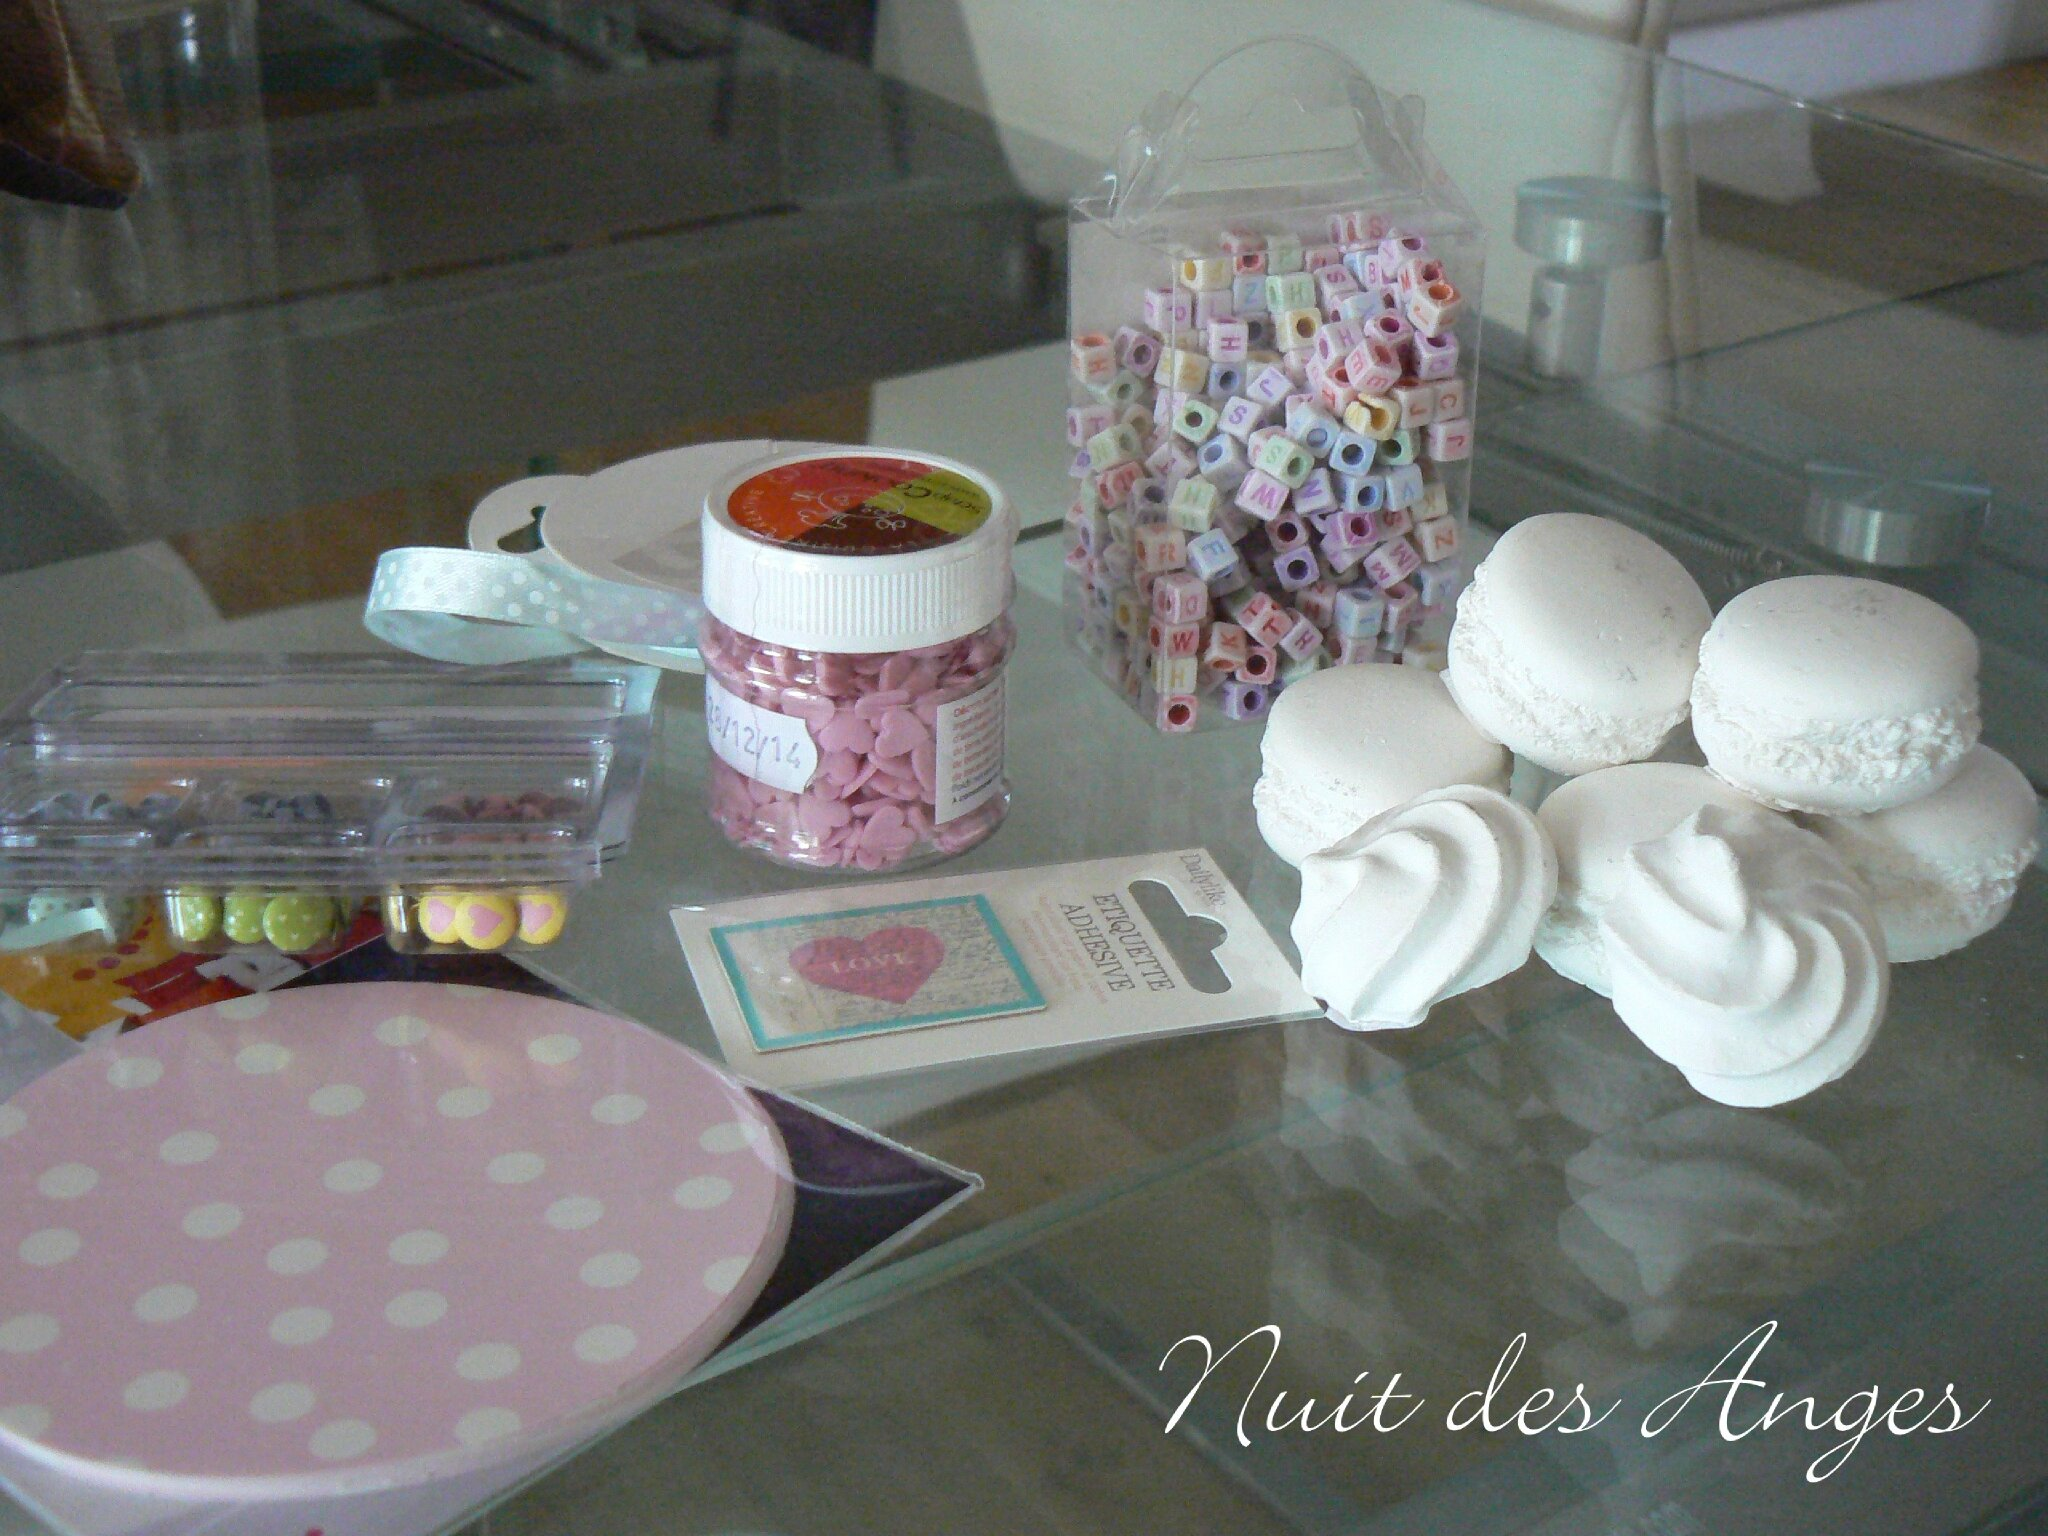 D coration de table gourmandise nuit des anges for Decoration theme gourmandise